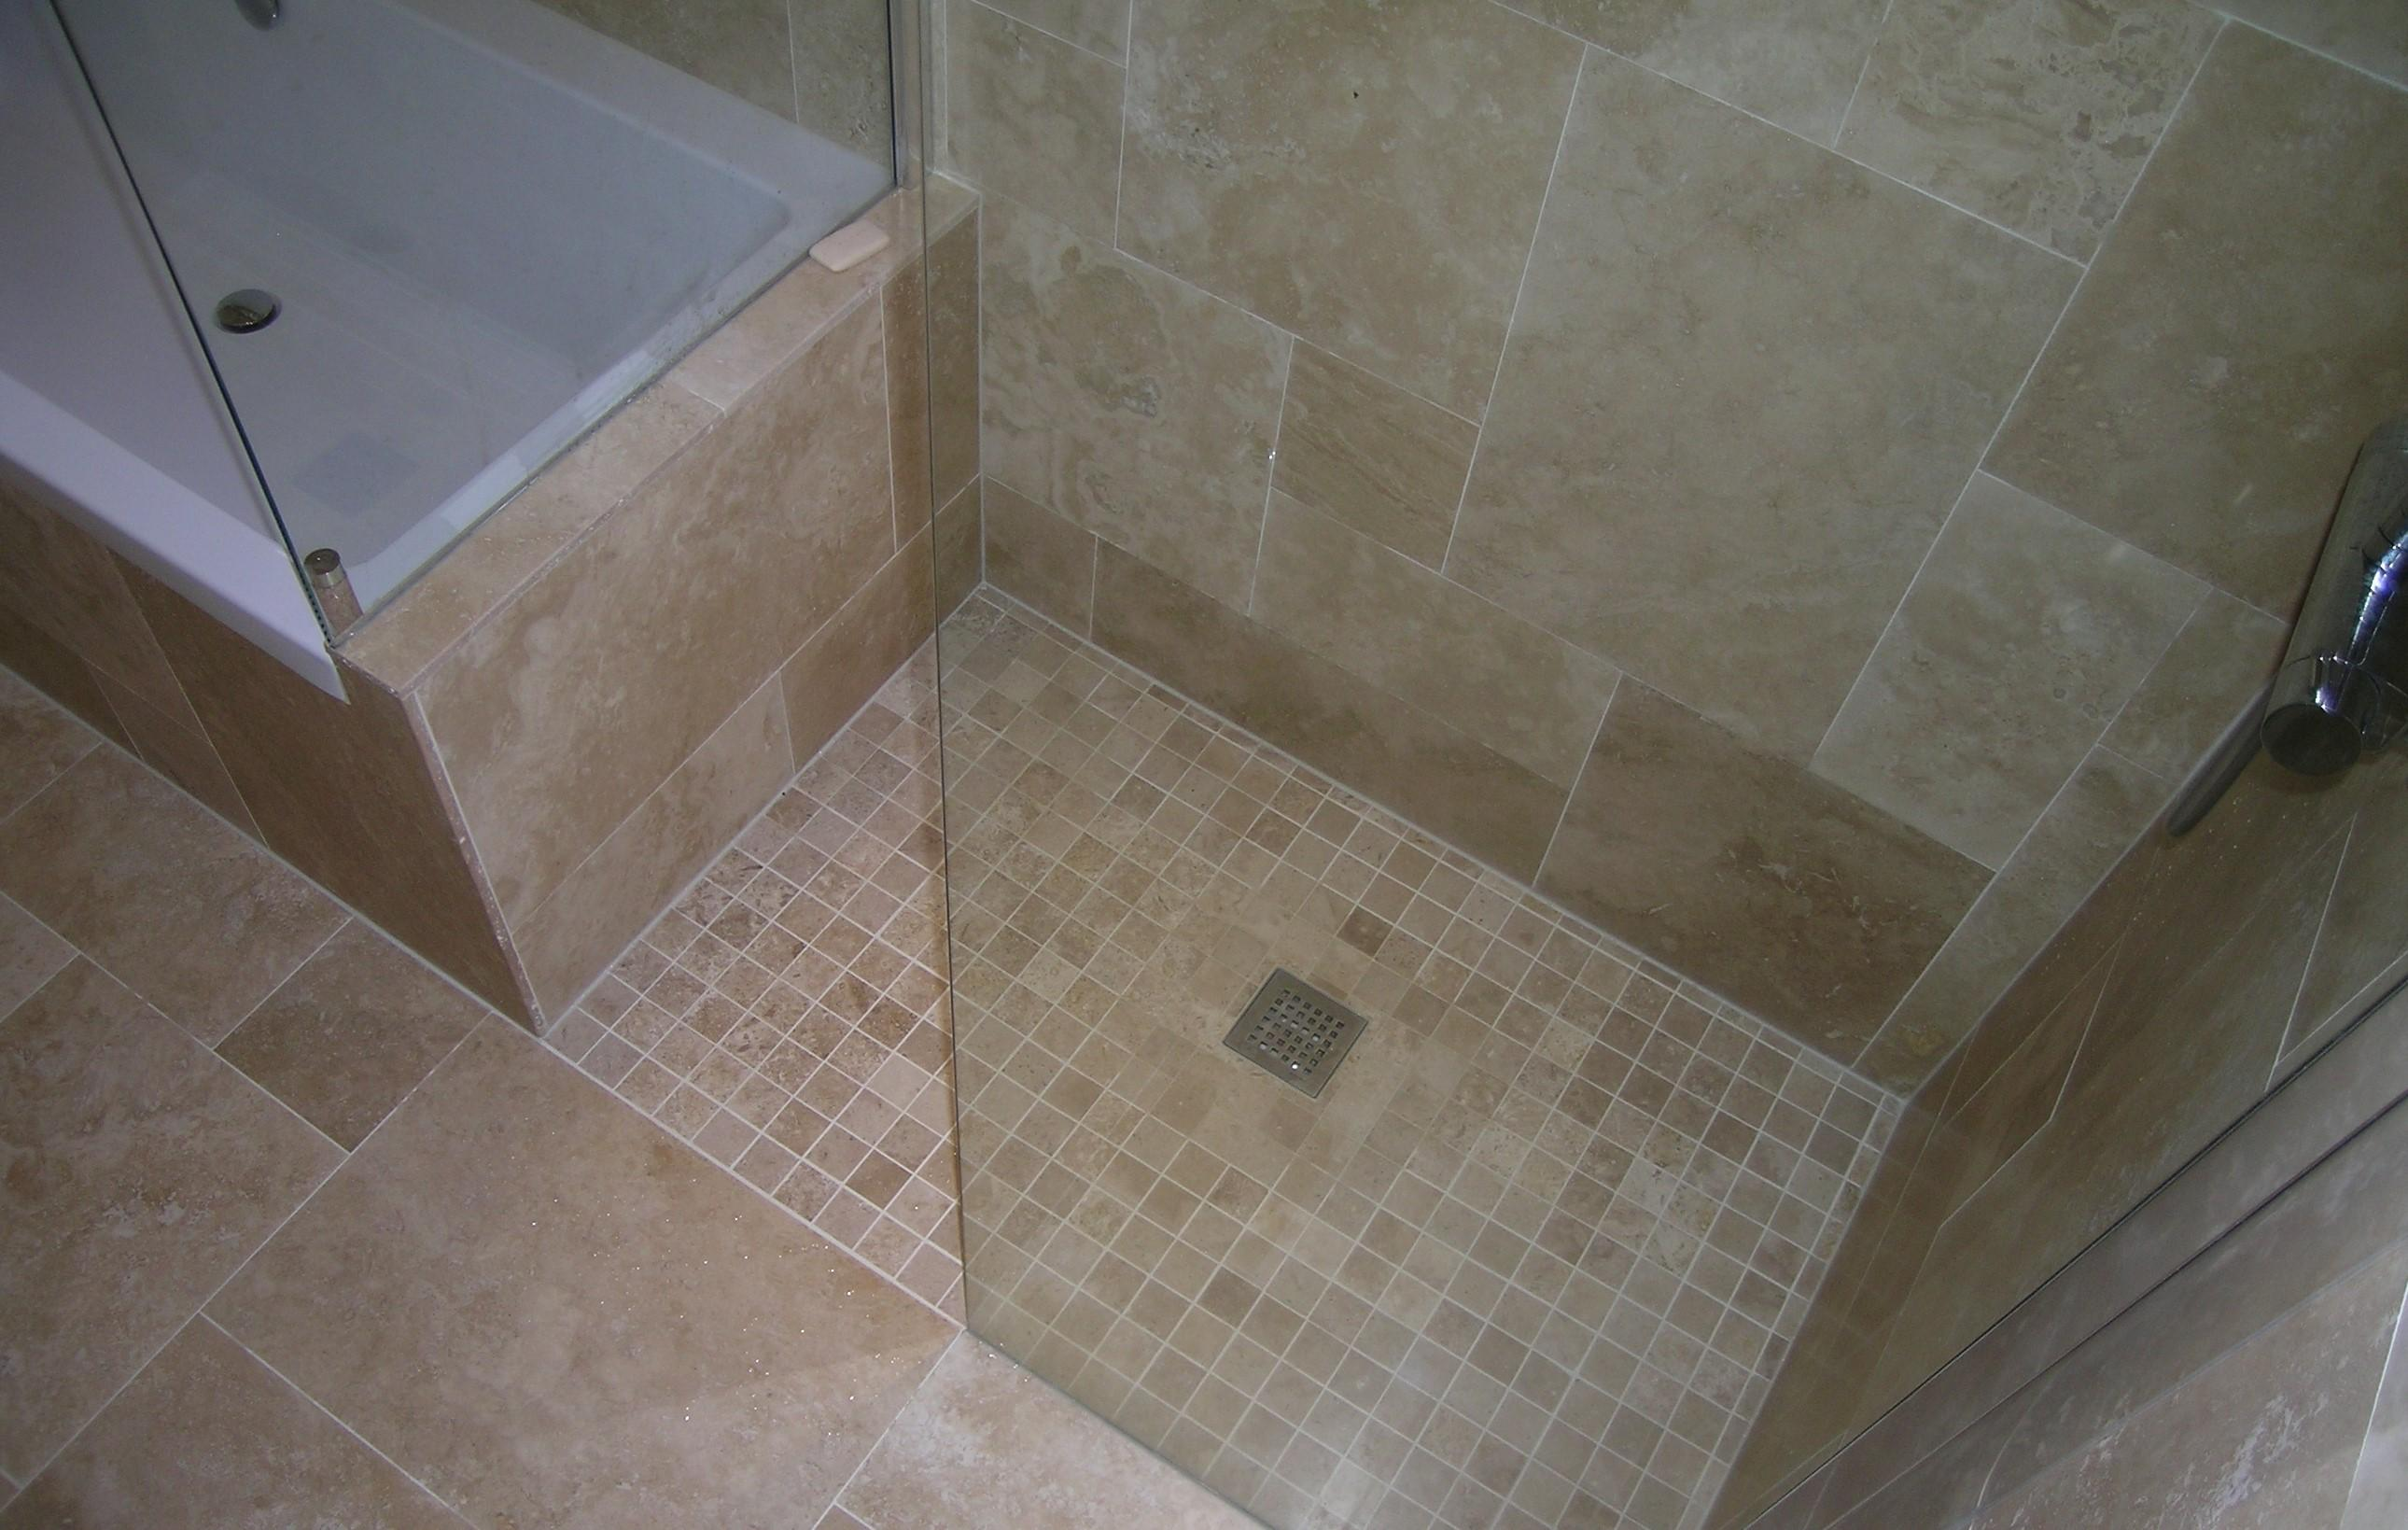 Luxury Bathrooms West Midlands bathroom design bathroom installation luxury bathrooms west midlands